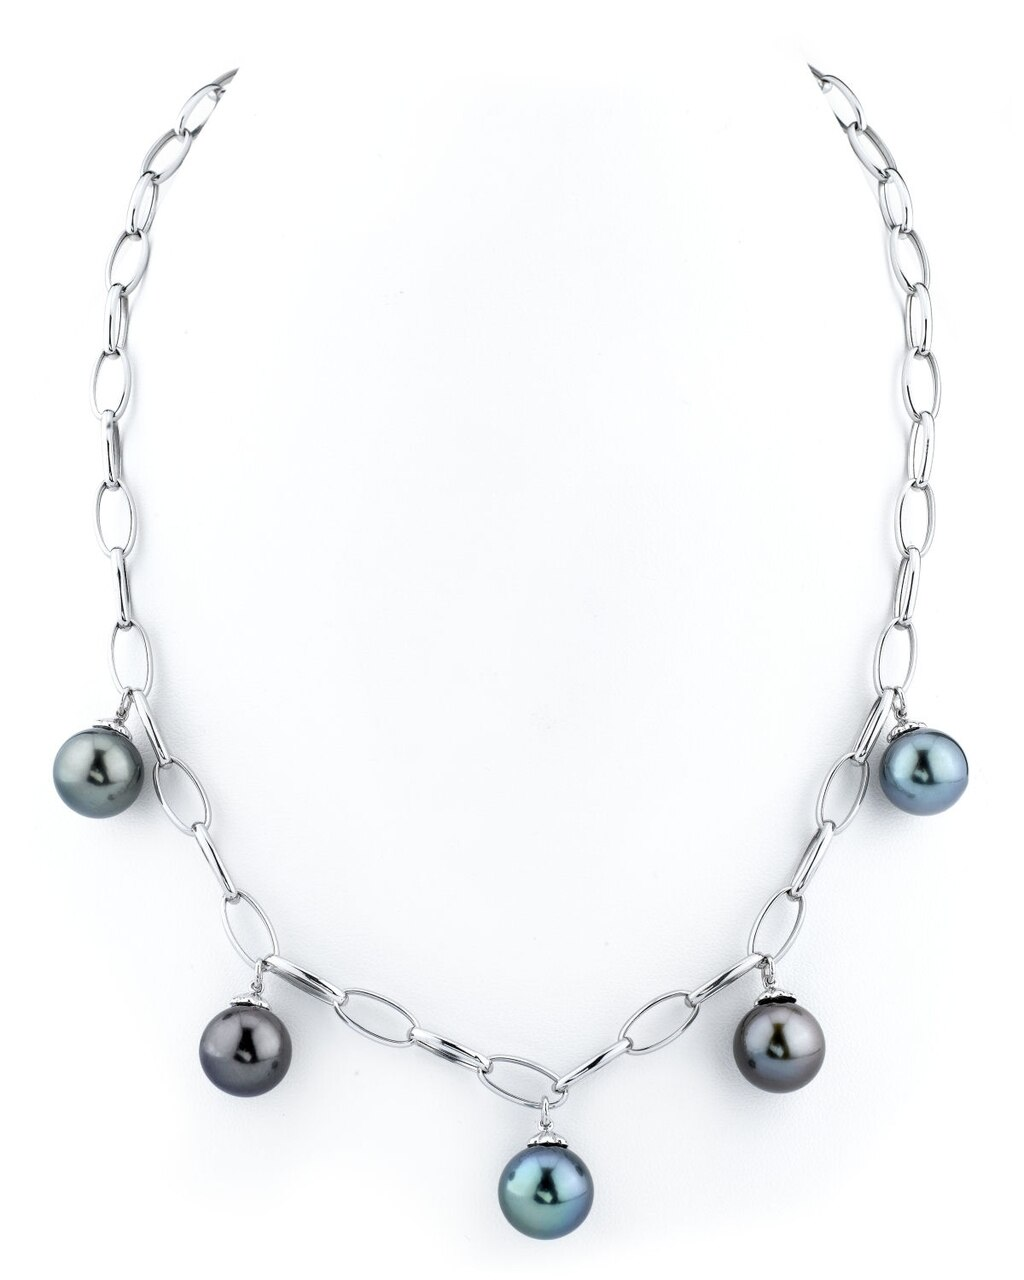 This exquisite necklace features 10.0-11.0mm Tahitian South Sea pearls, handpicked for their radiant luster